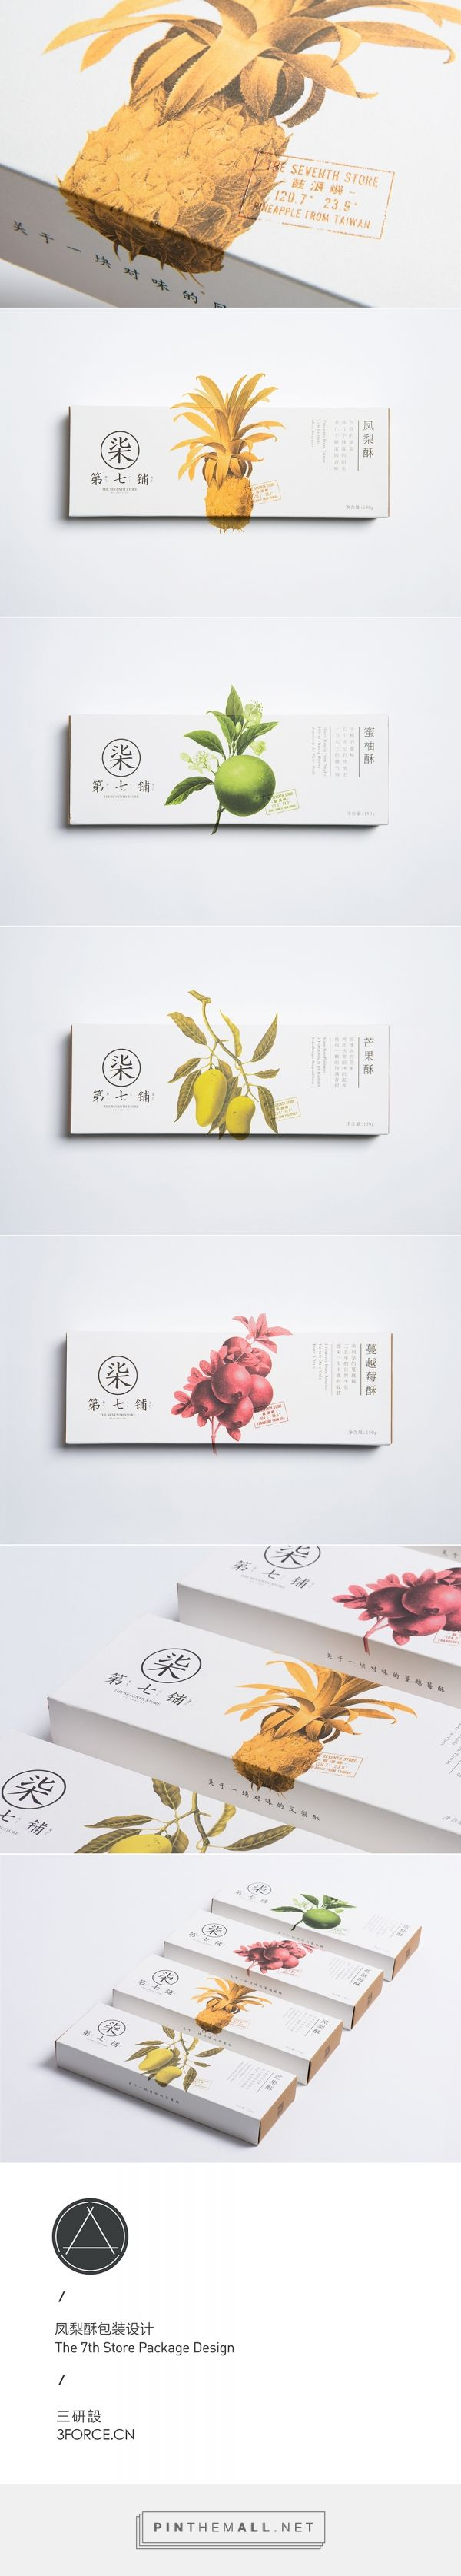 The 7th Store Pineapple Pie Packaging / by 3Force 三研設 PD